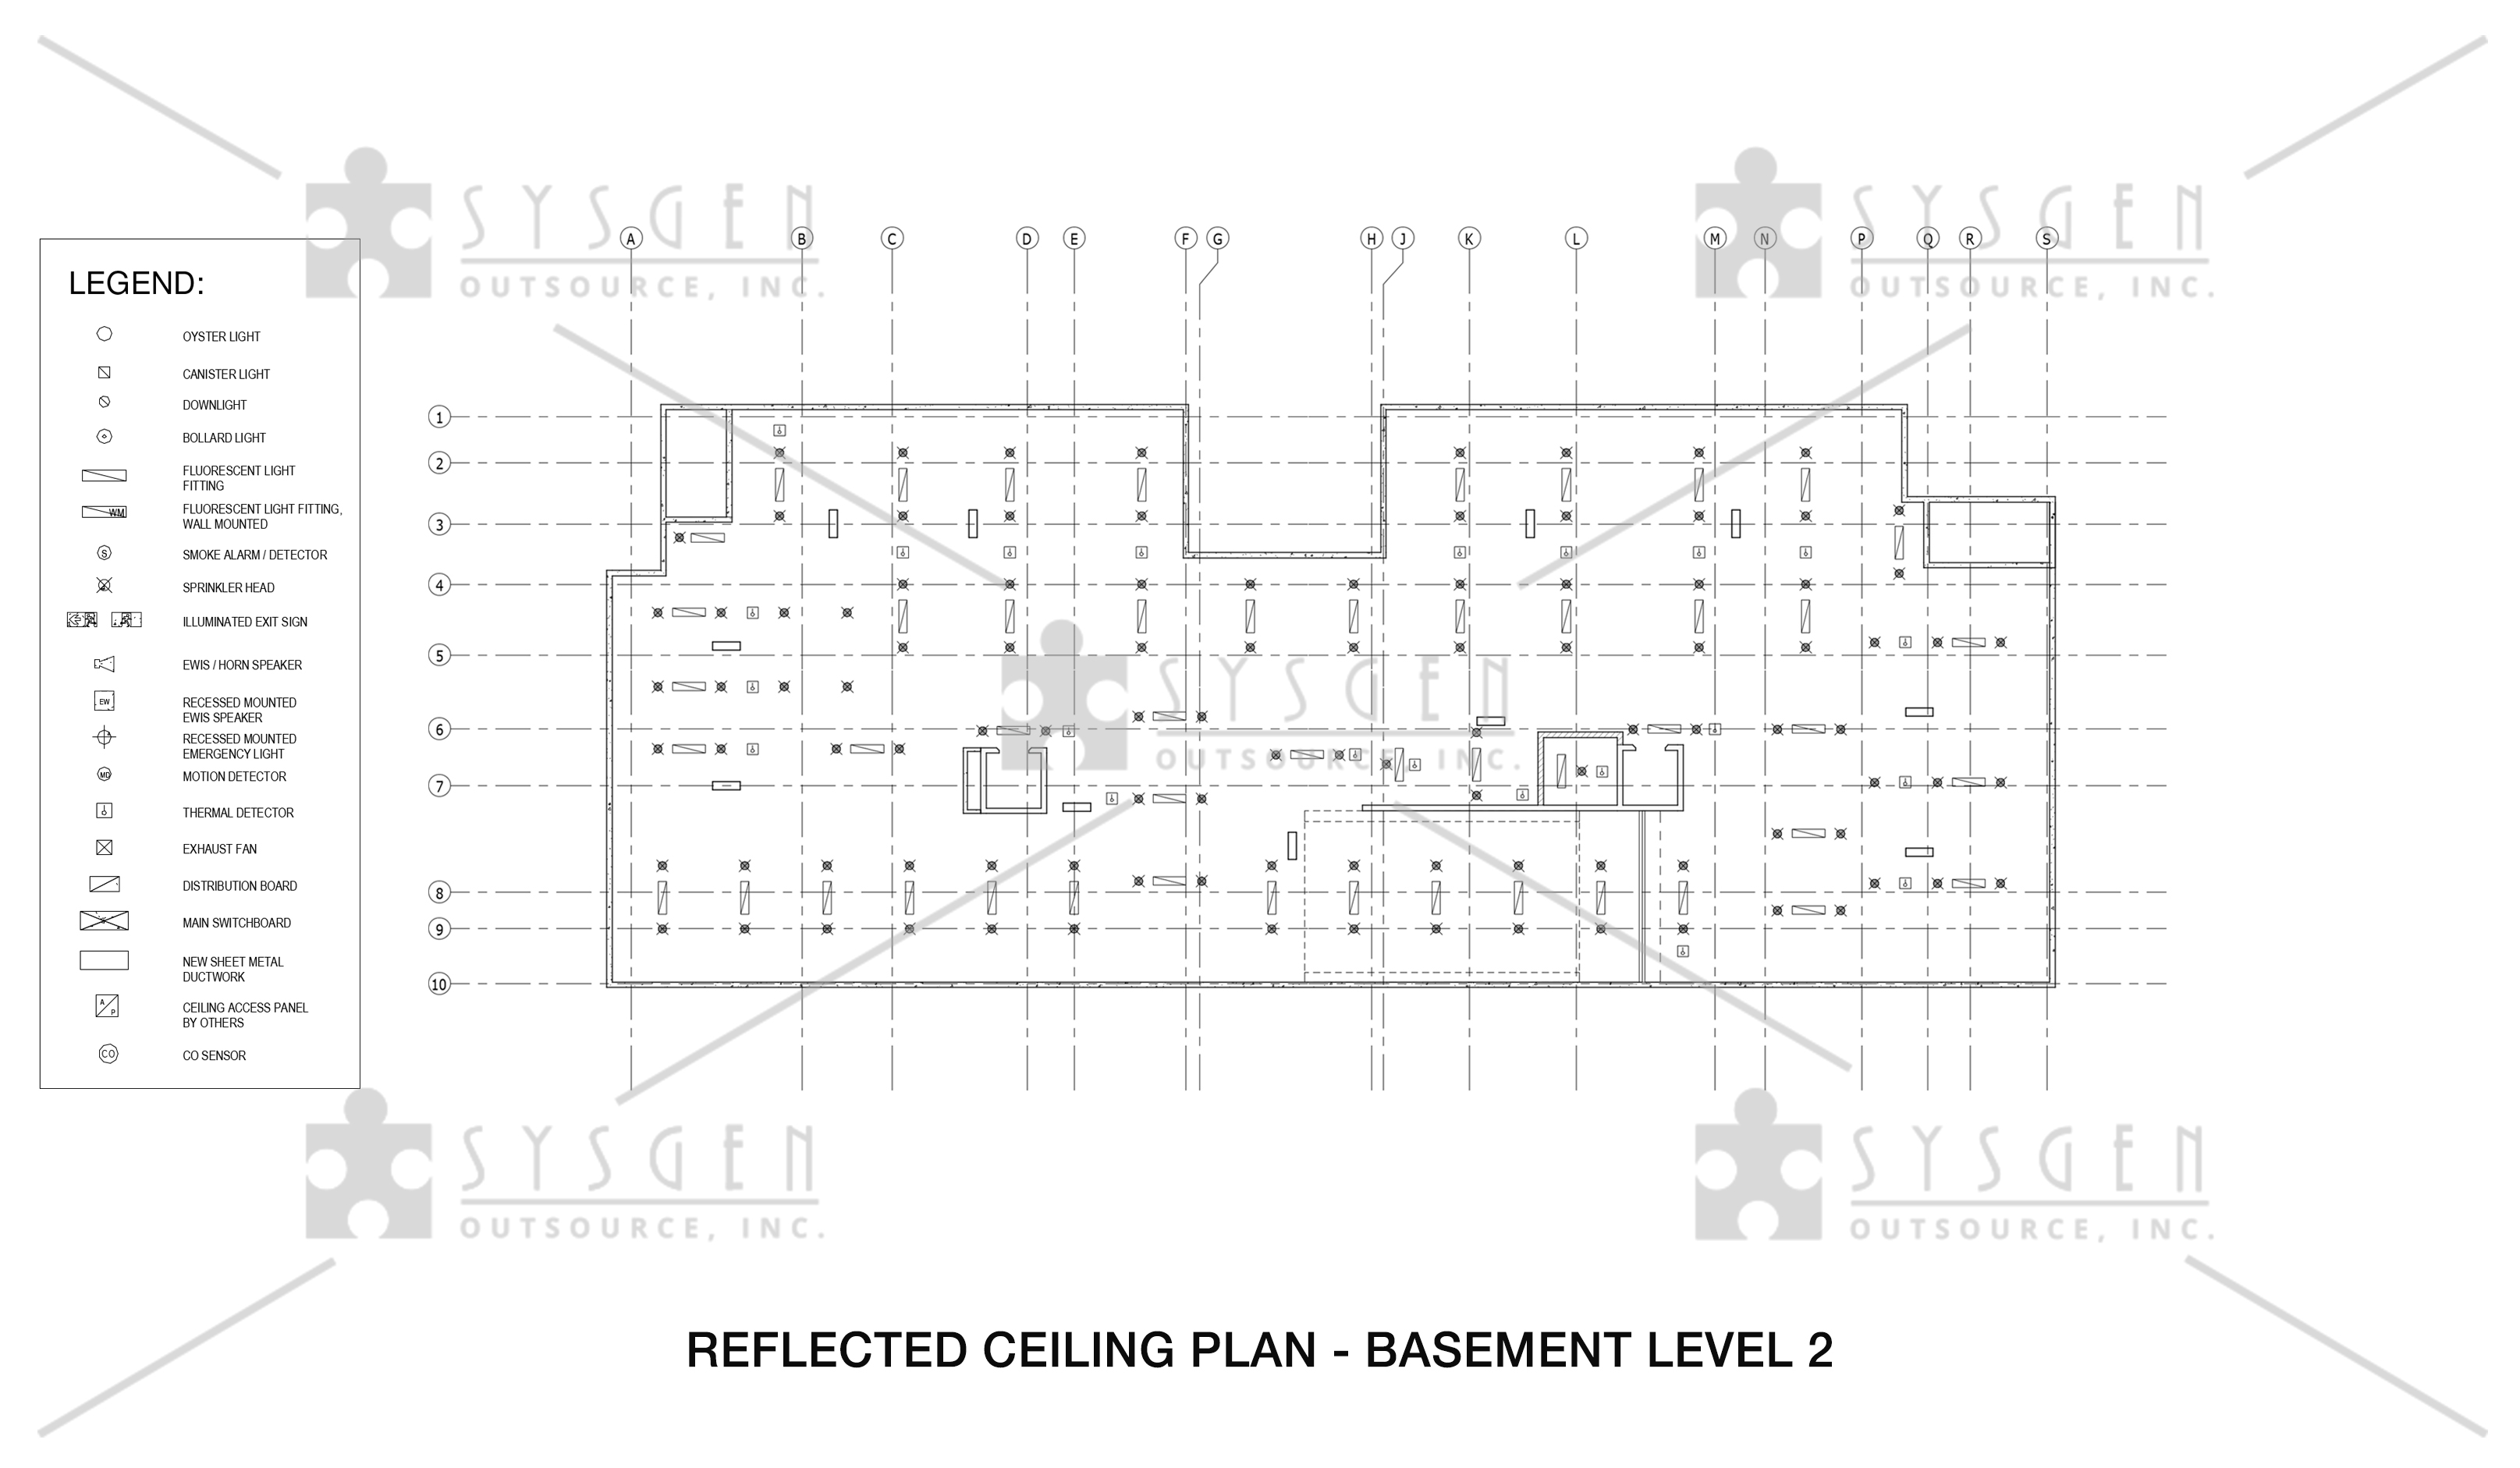 sysgen-outsource-cad-outsourcing-services-cad-conversion-revit-4-storey-residentialss24